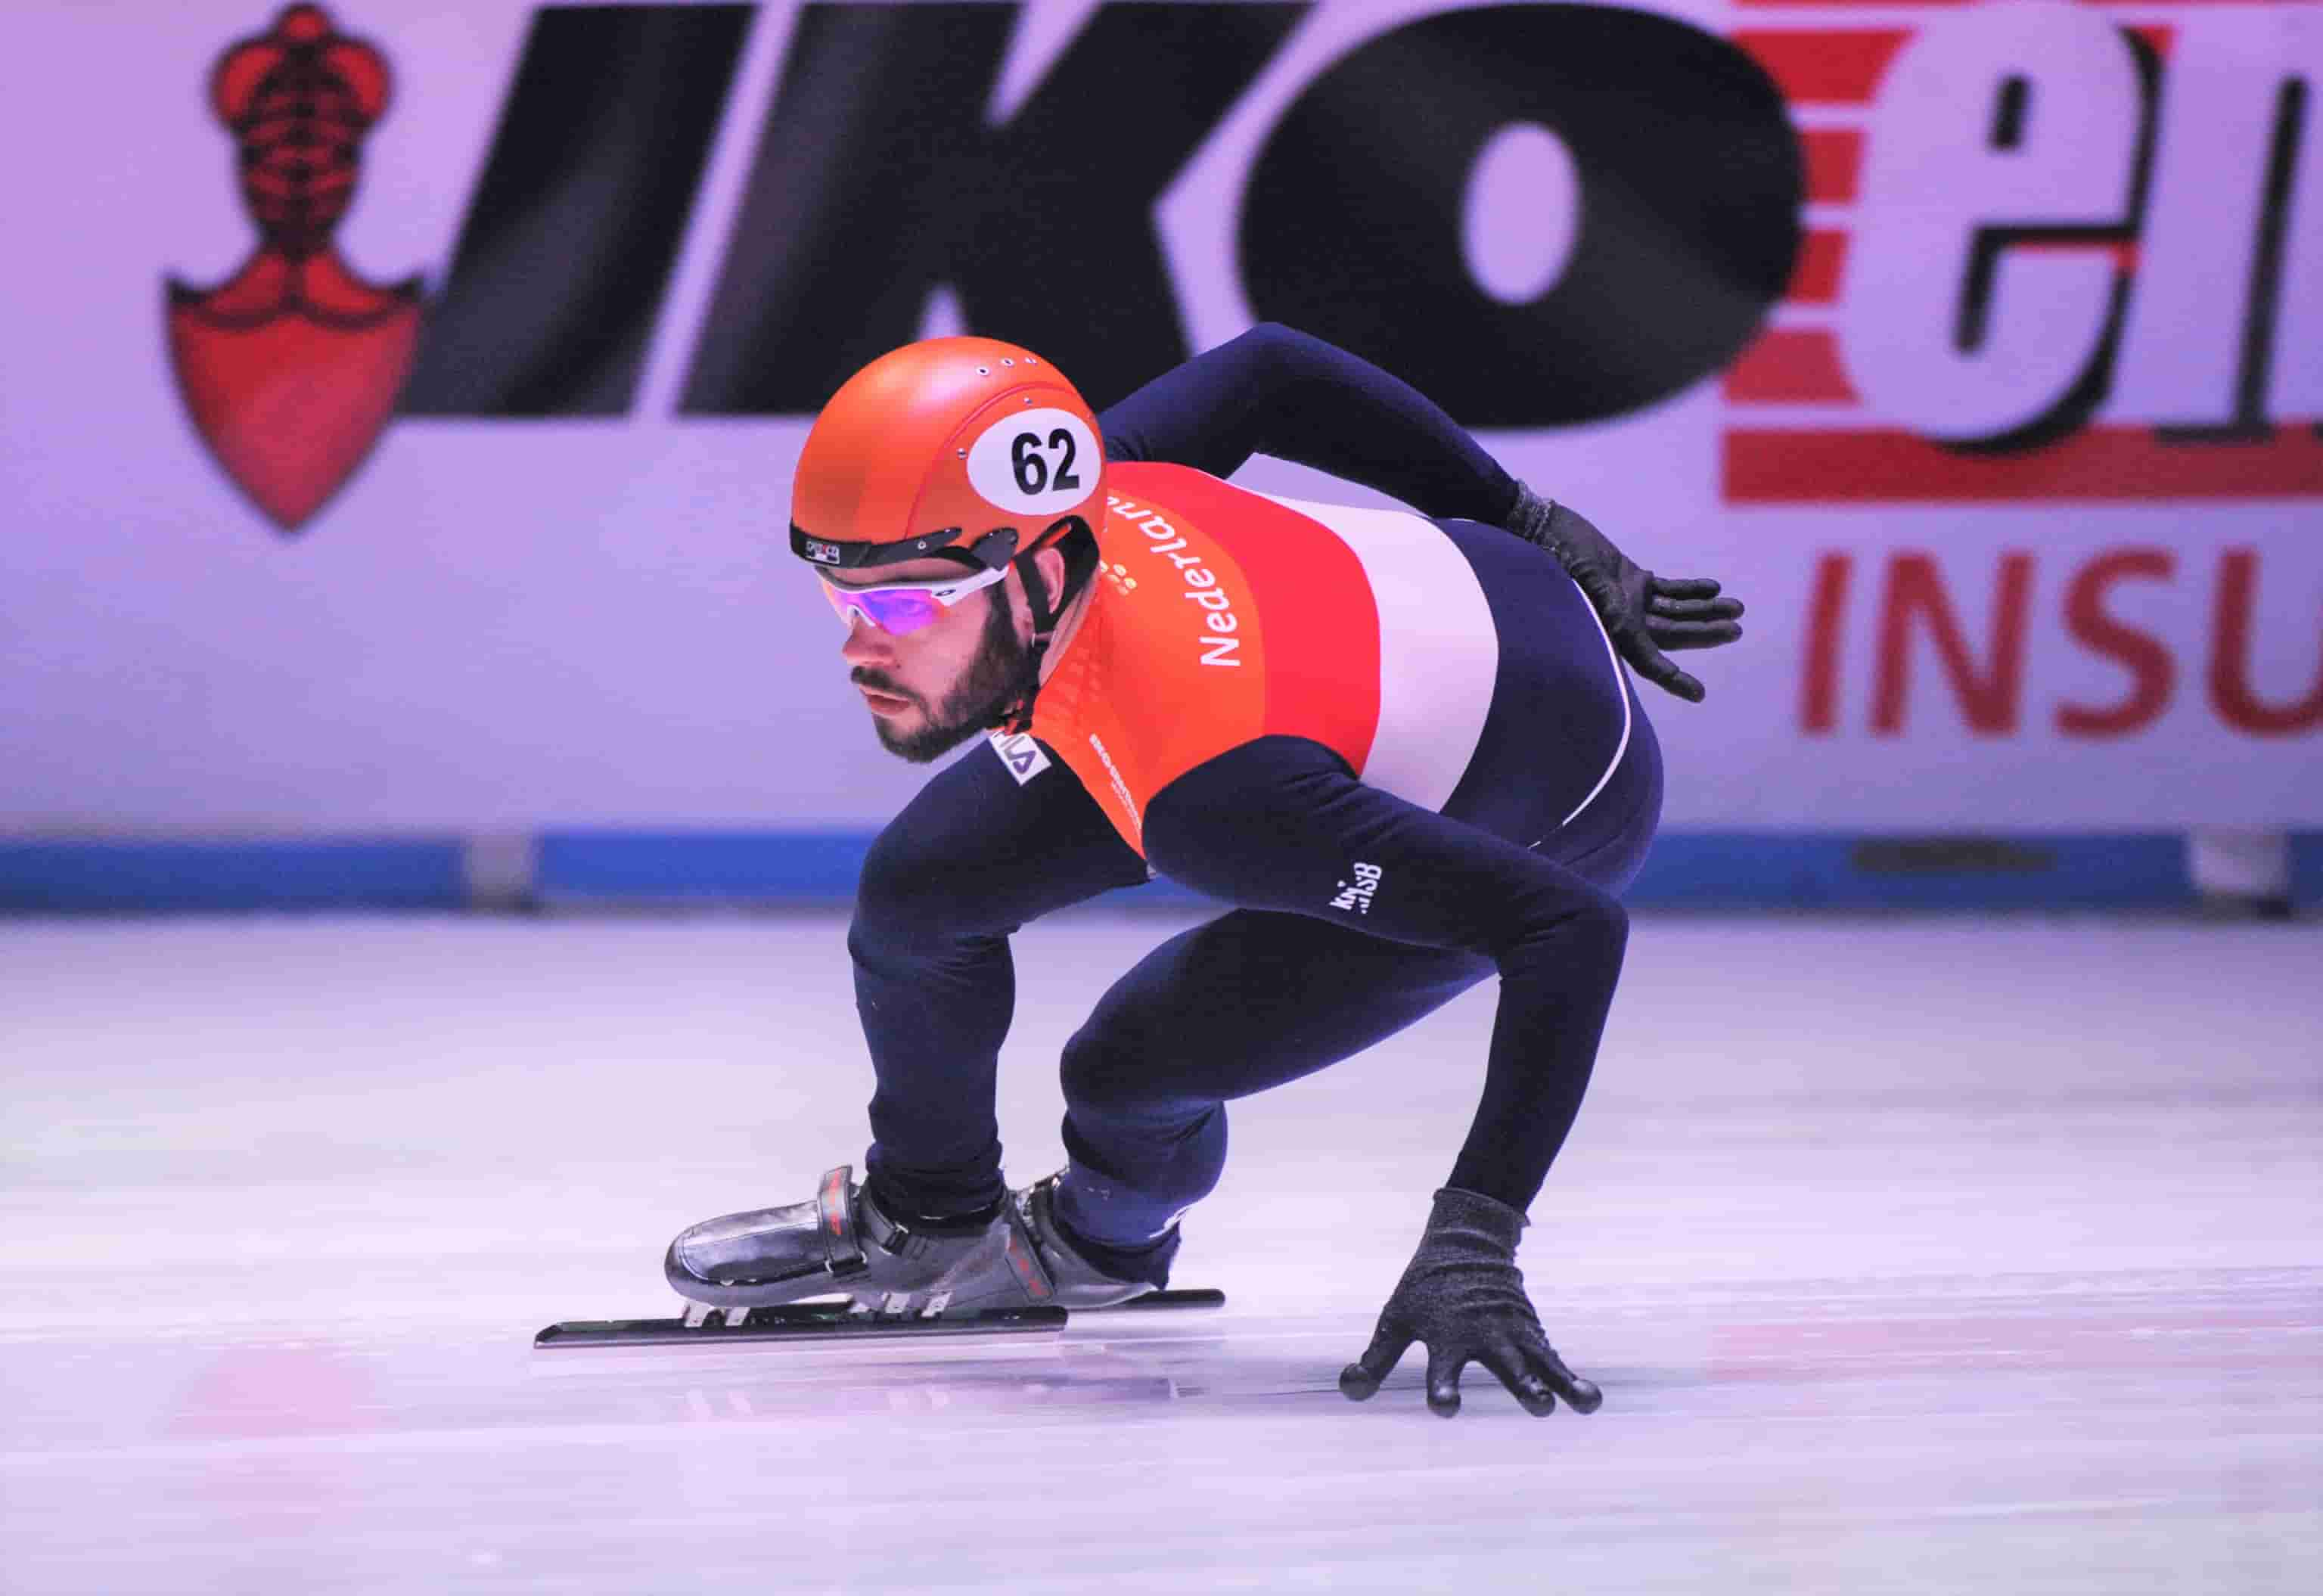 IKO insulations sponsort Sjinkie en WK shorttrack Ahoy